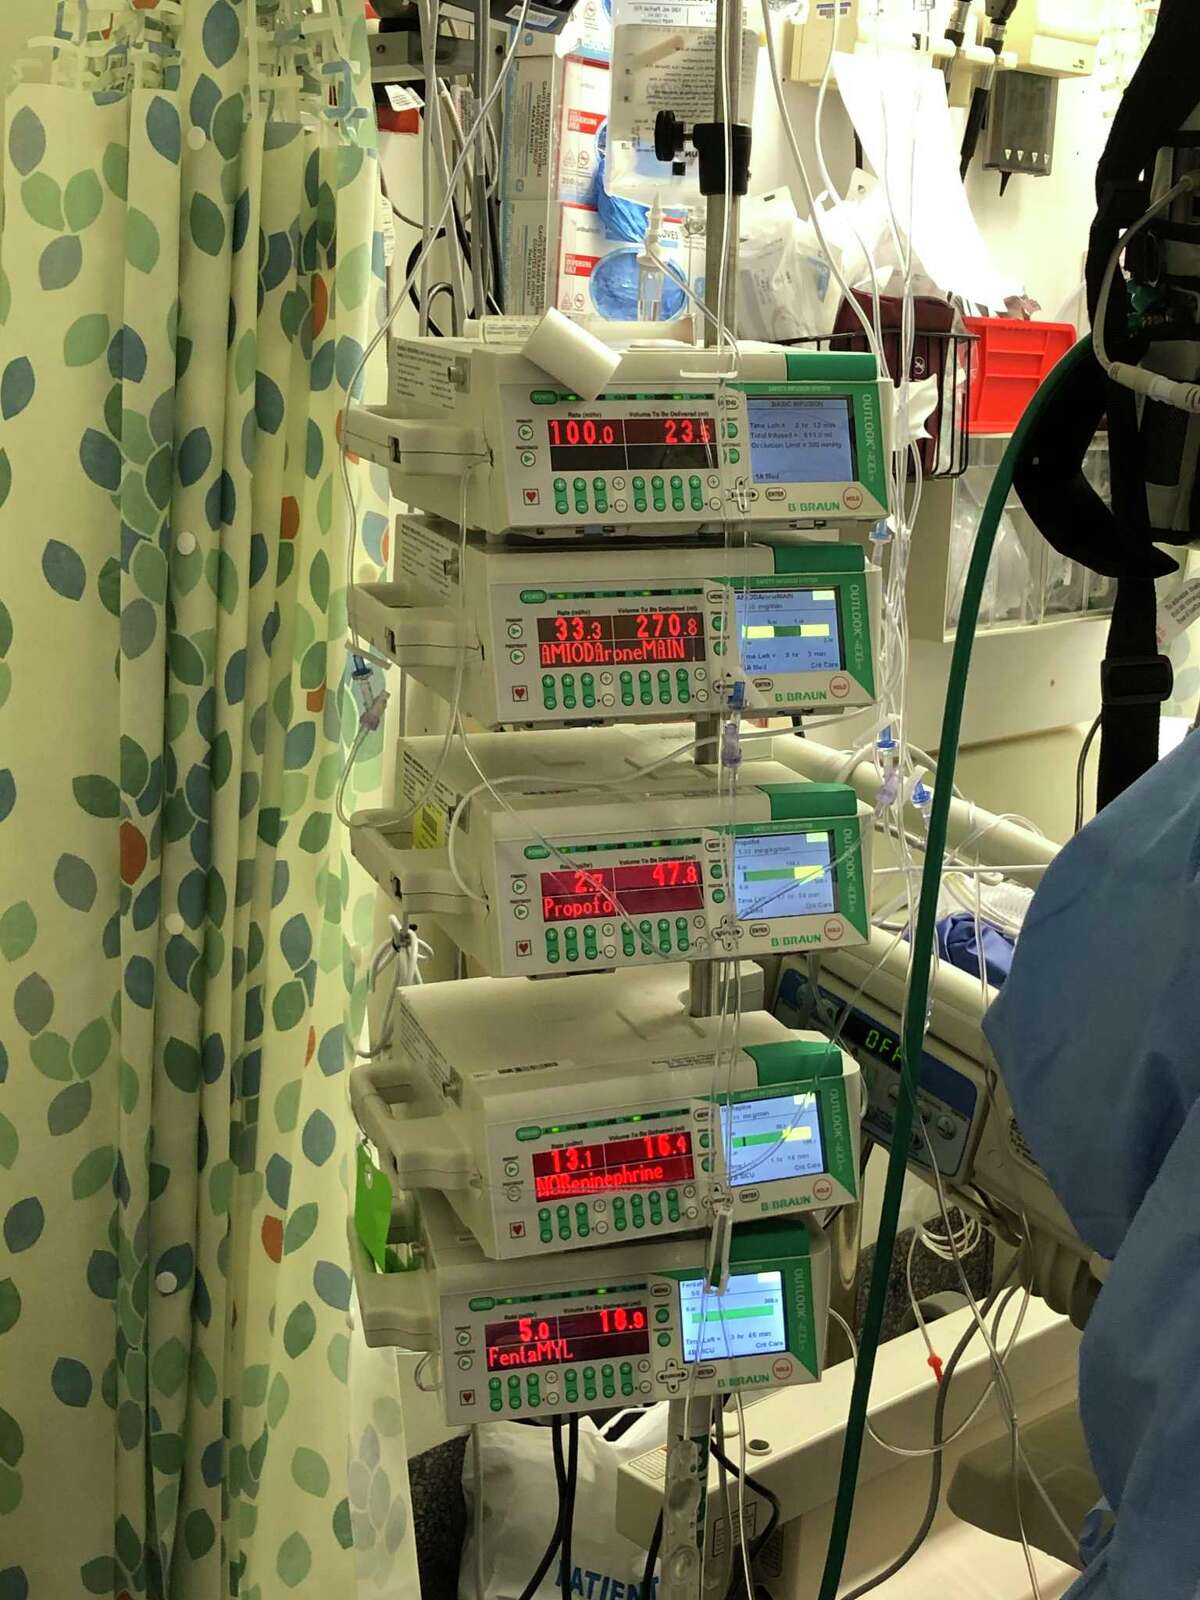 Seven IV infusion pumps attached to a single patient with severe complications from COVID-19 at North Central Bronx Hospital in New York City.